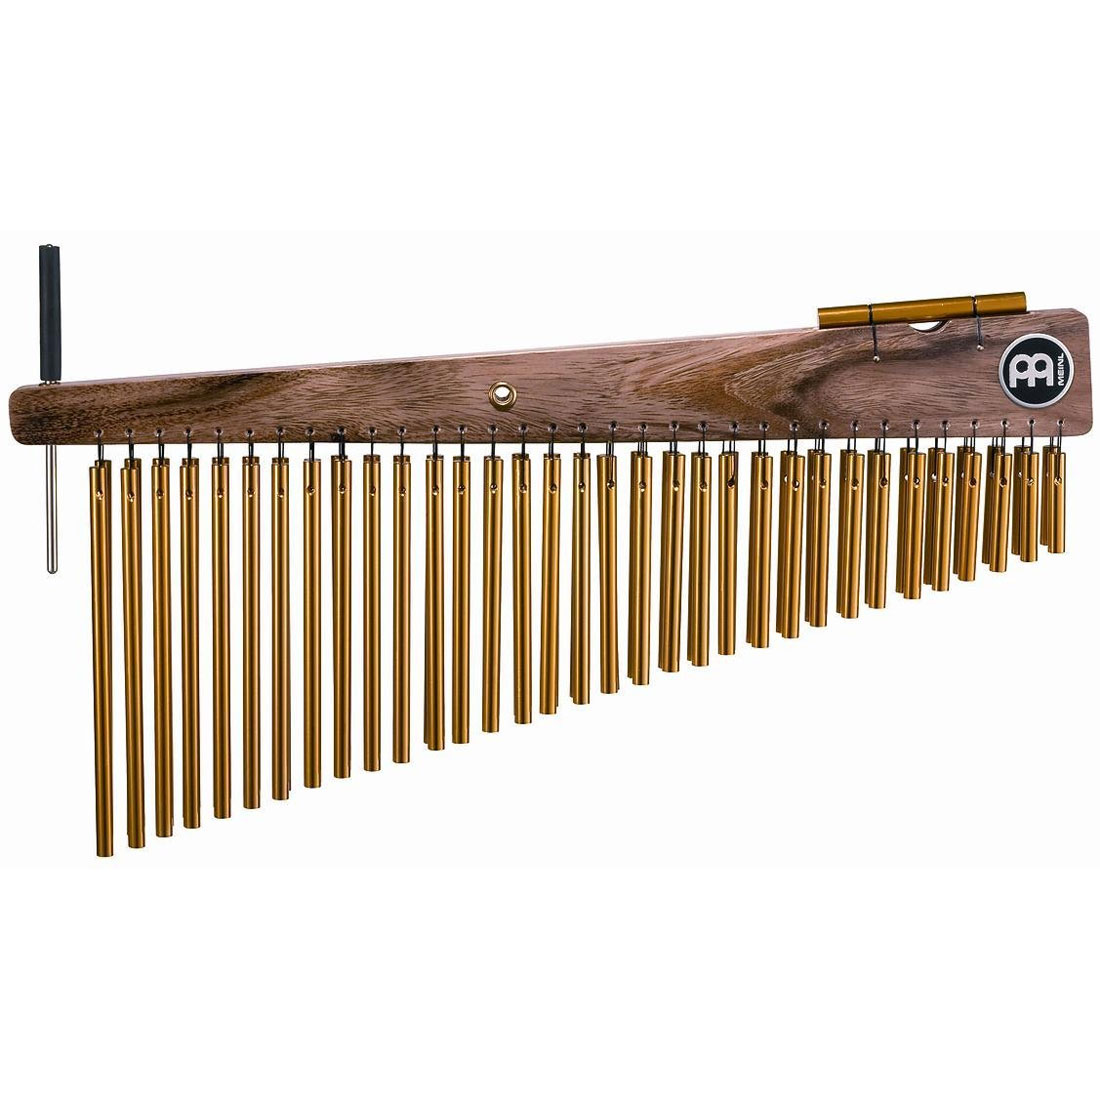 Meinl Double Row 66-Bar Chimes